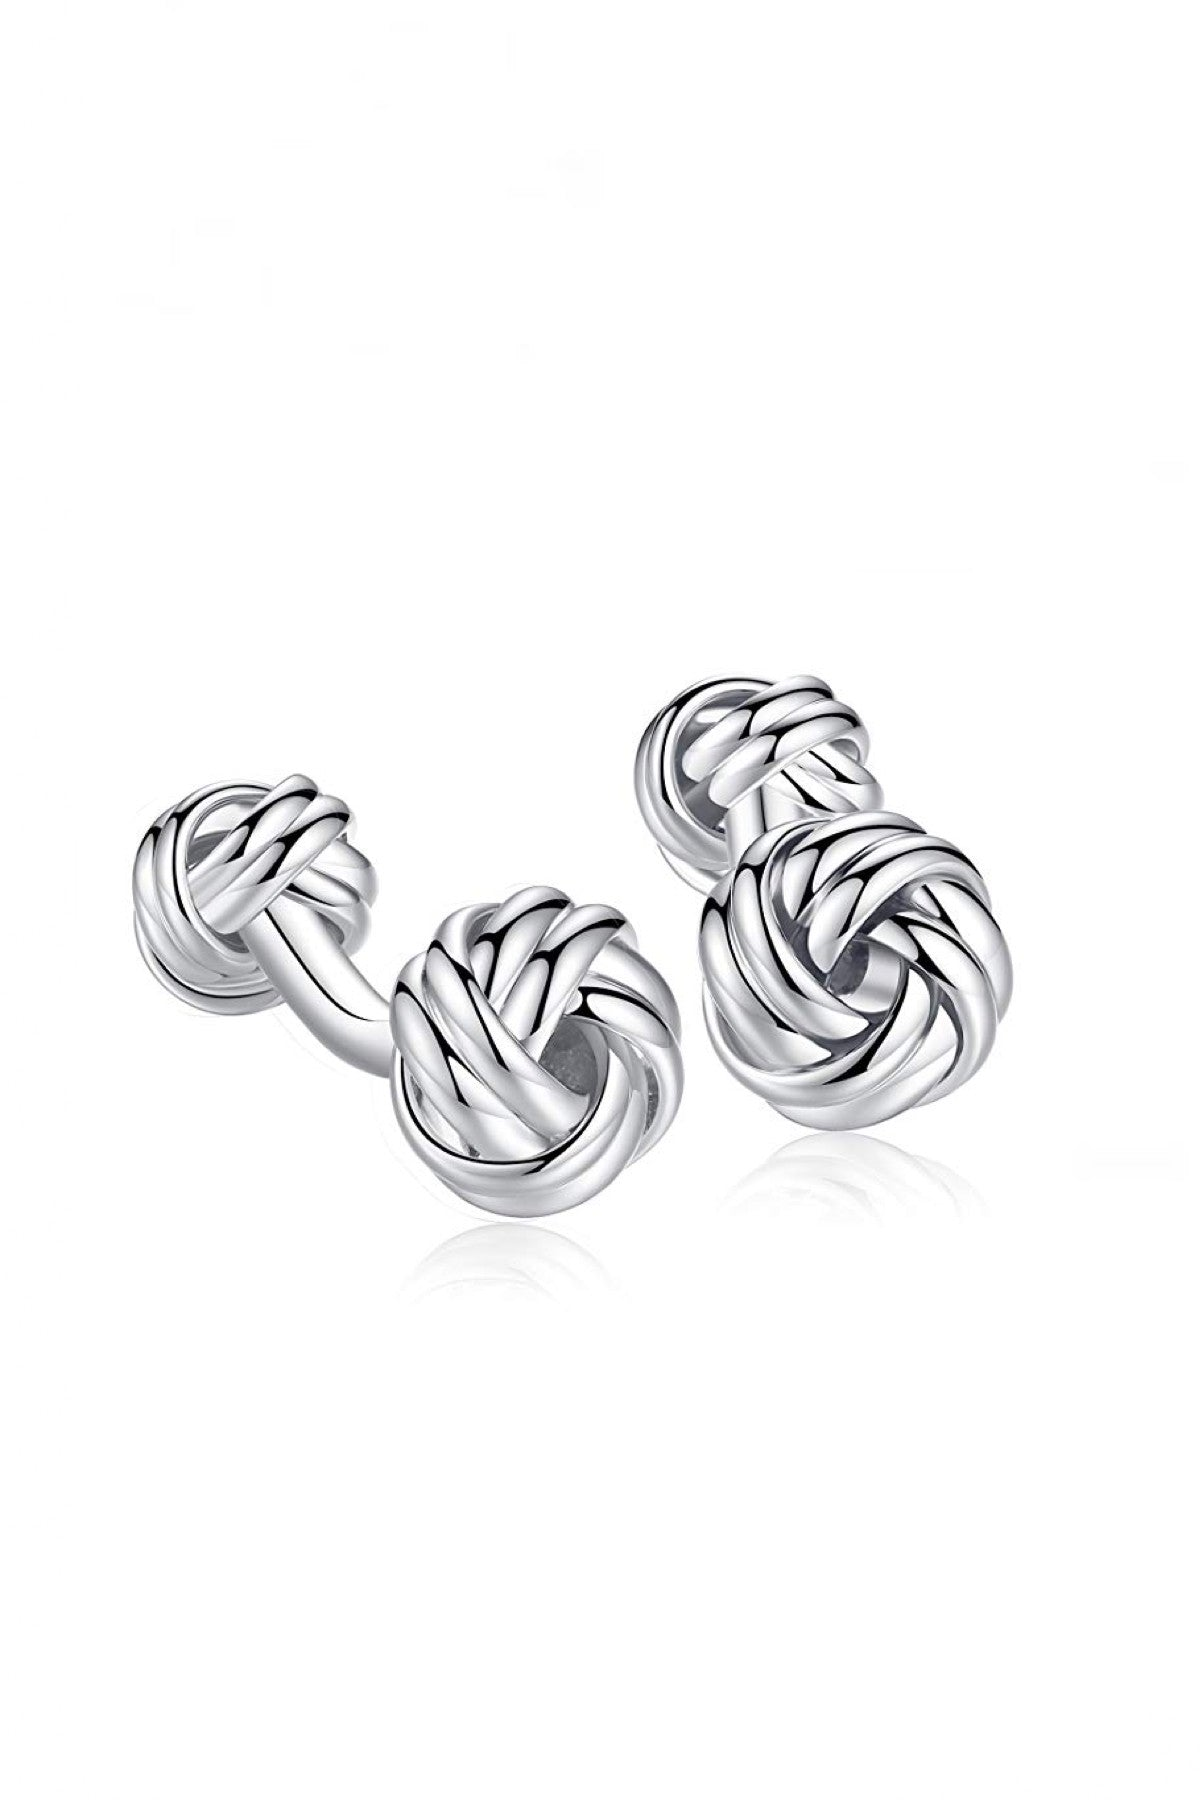 Silver Double Knot Cufflinks